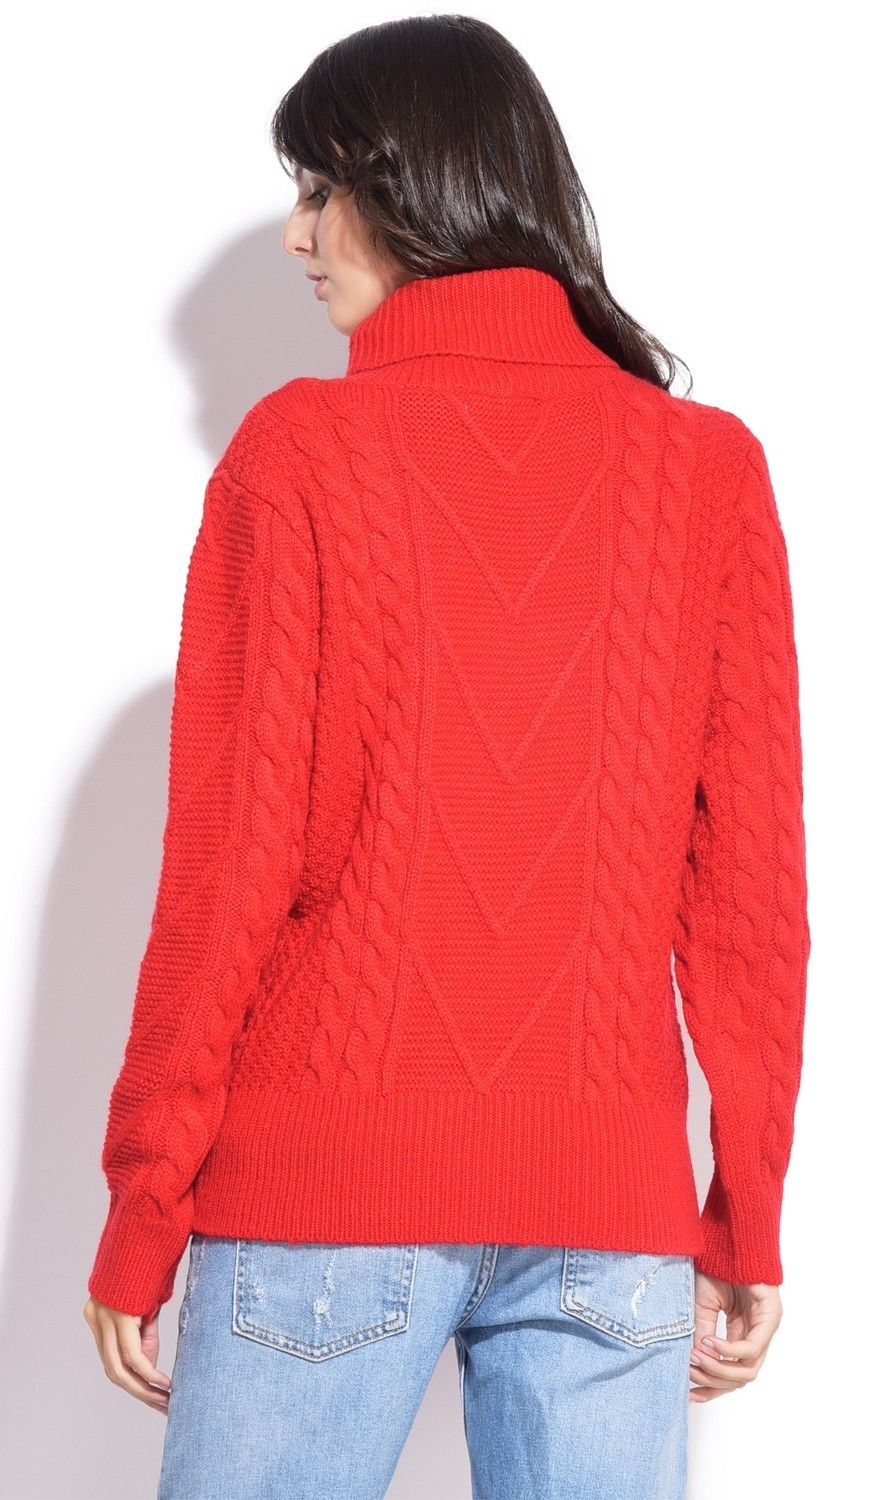 Assuili Roll Neck Twisted Yarn Sweater in Red